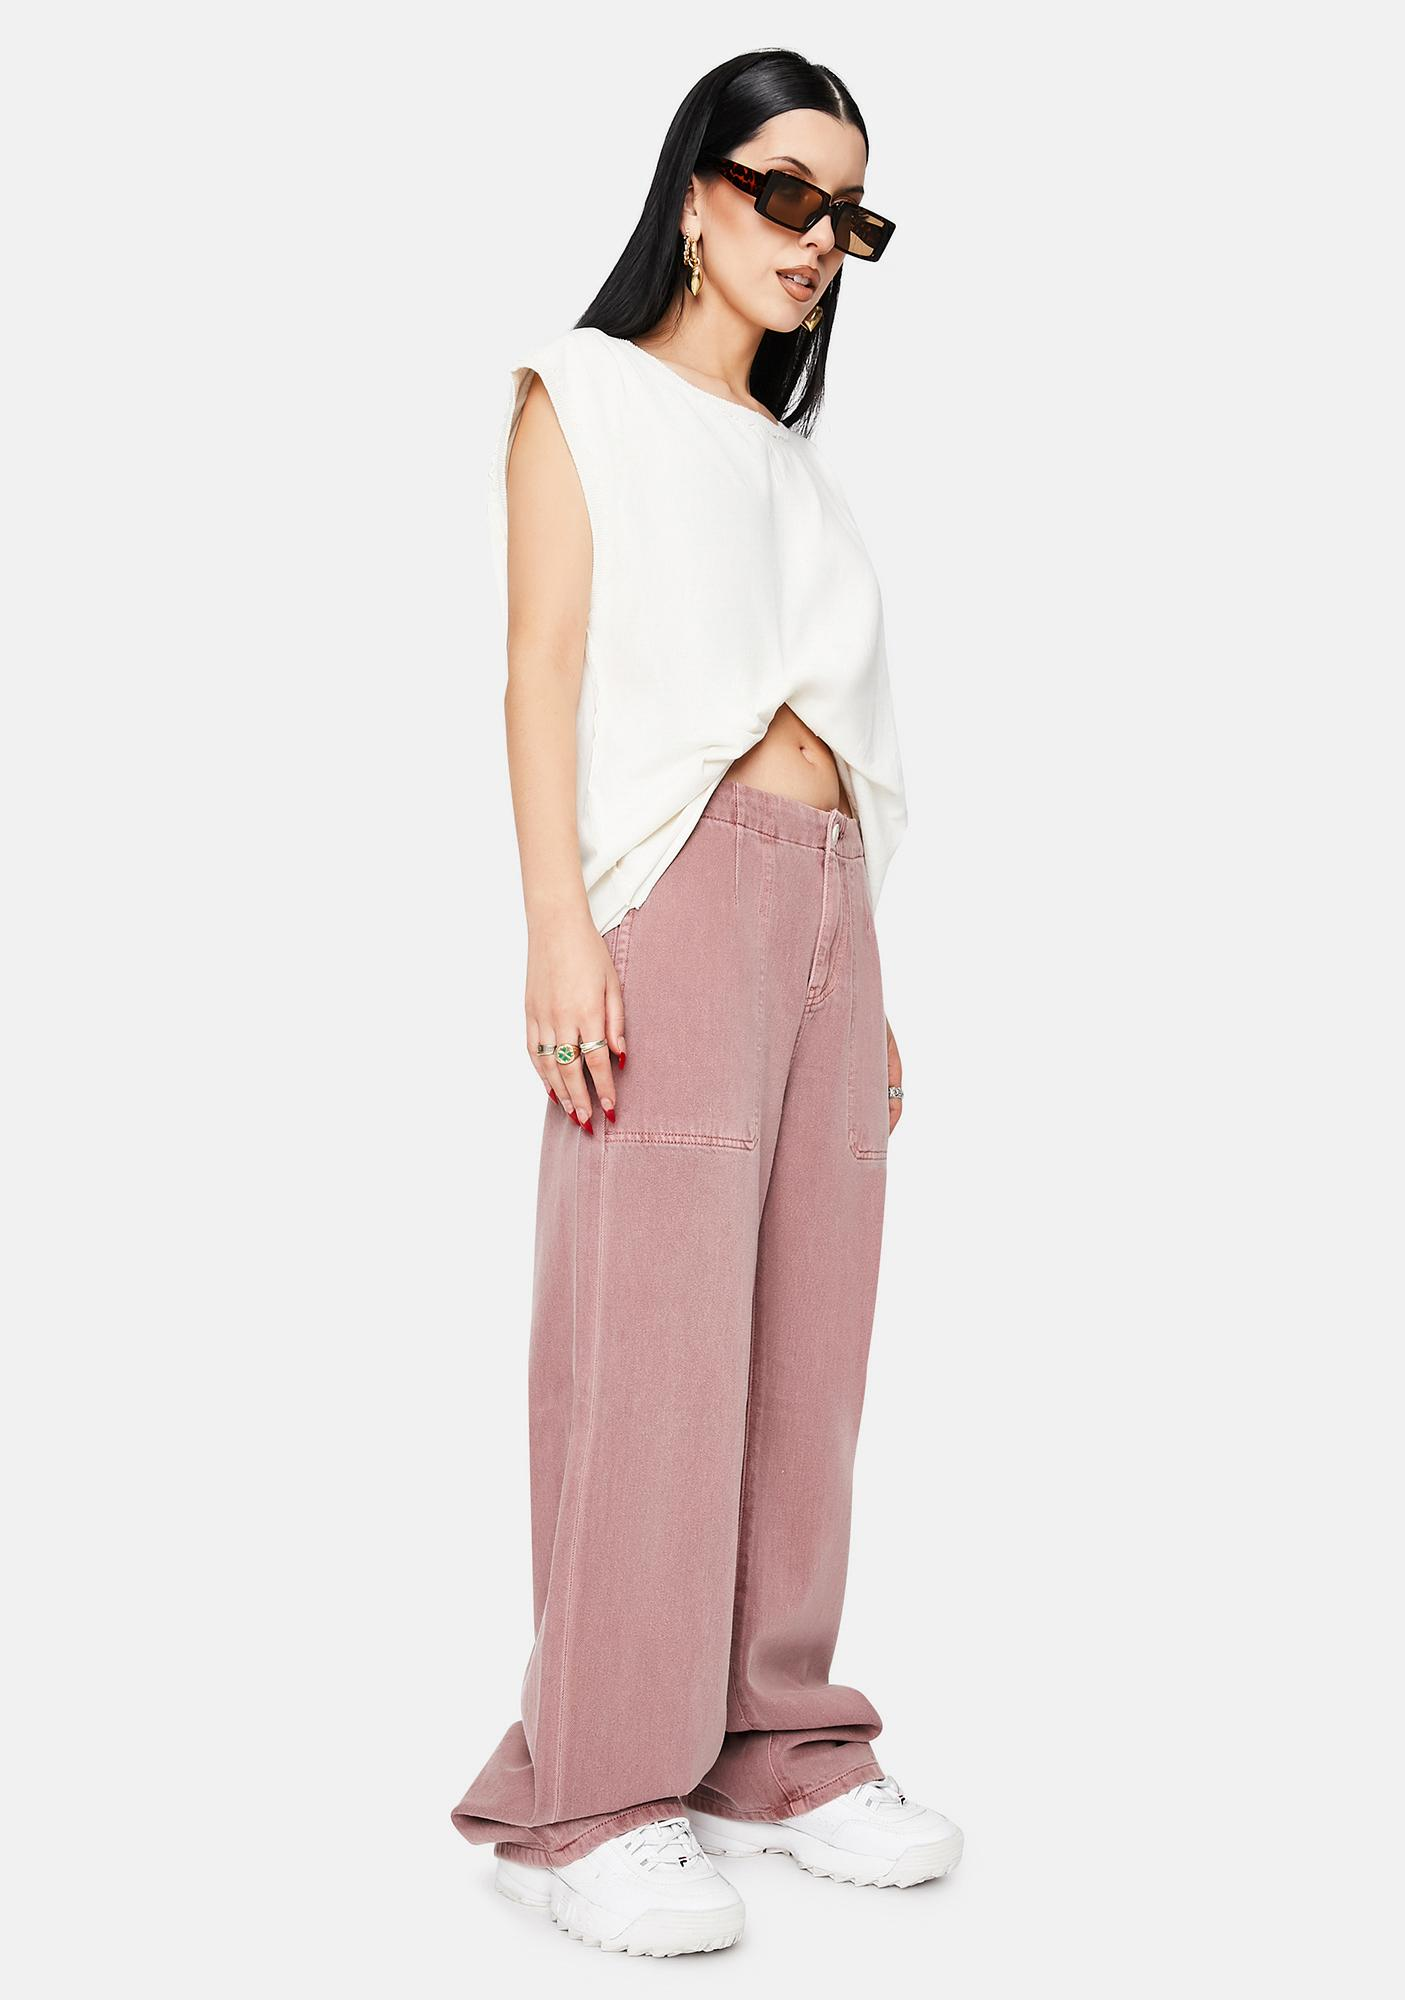 Articles of Society Hardwash Pink Tammy High Waisted Wide Leg Pants